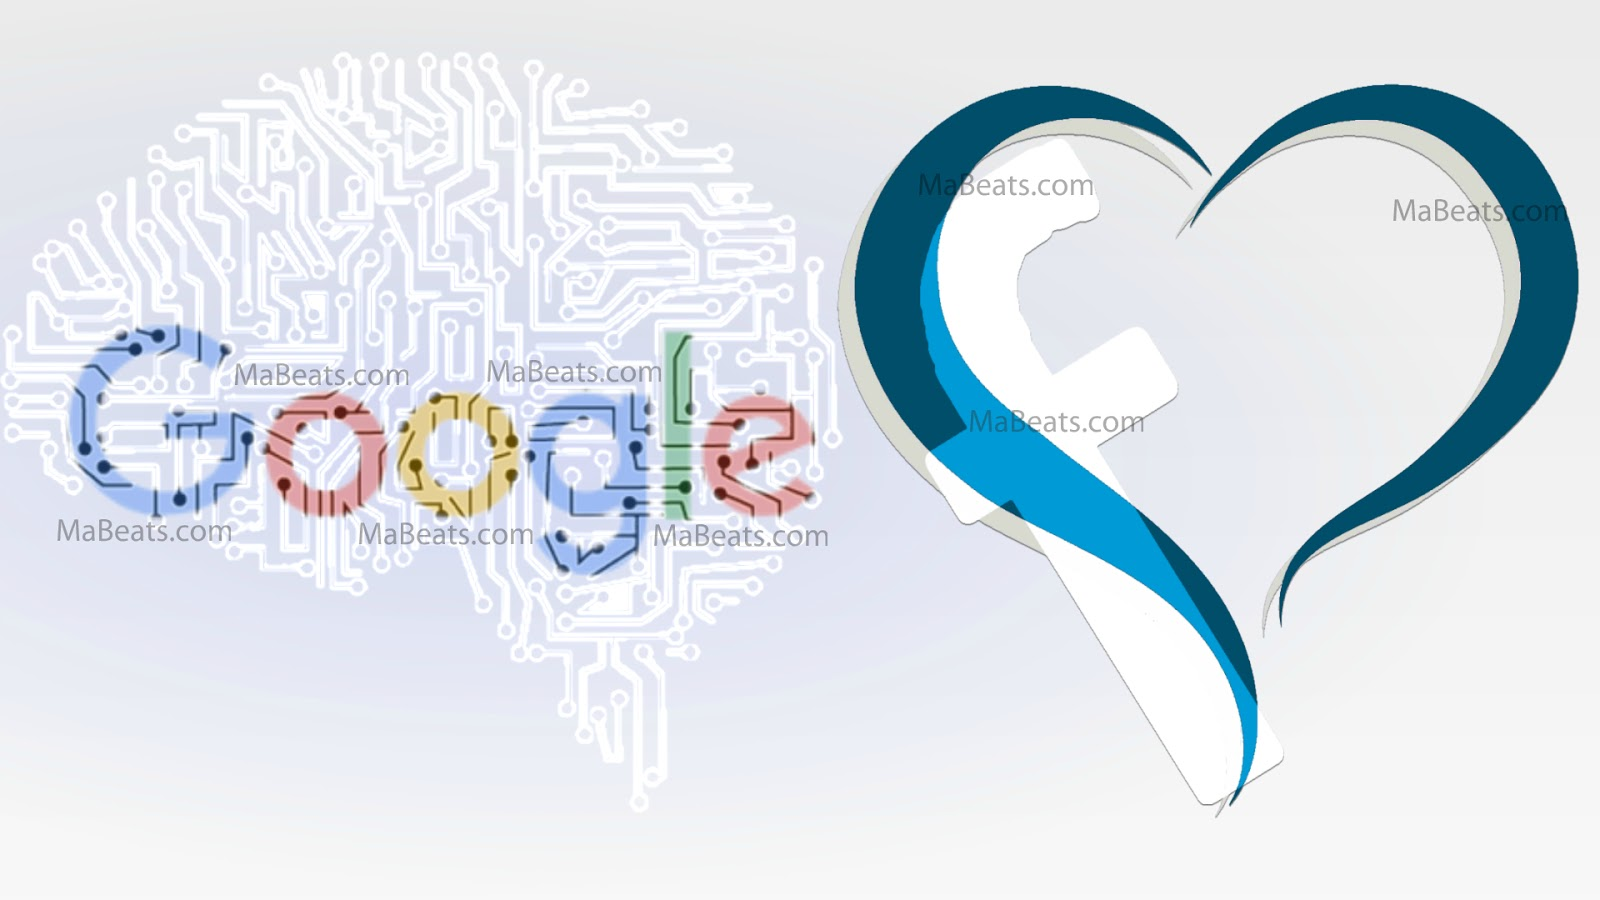 Google, Facebook, heart, brain, blue heart, white background, cyber brain, Internet